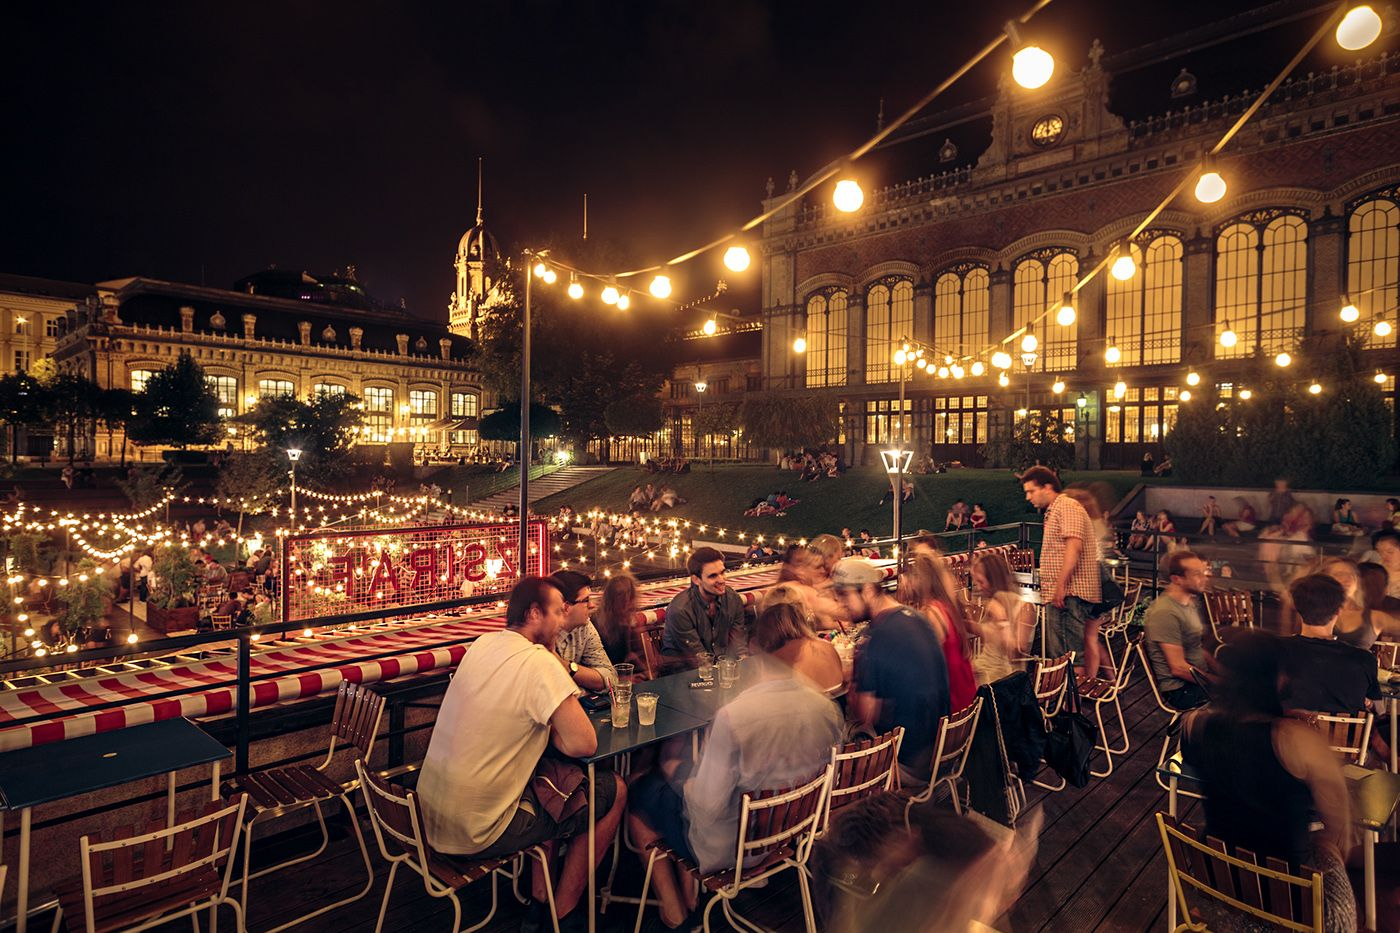 ZSIRÁF on Behance Beer garden, Train station, Challenges